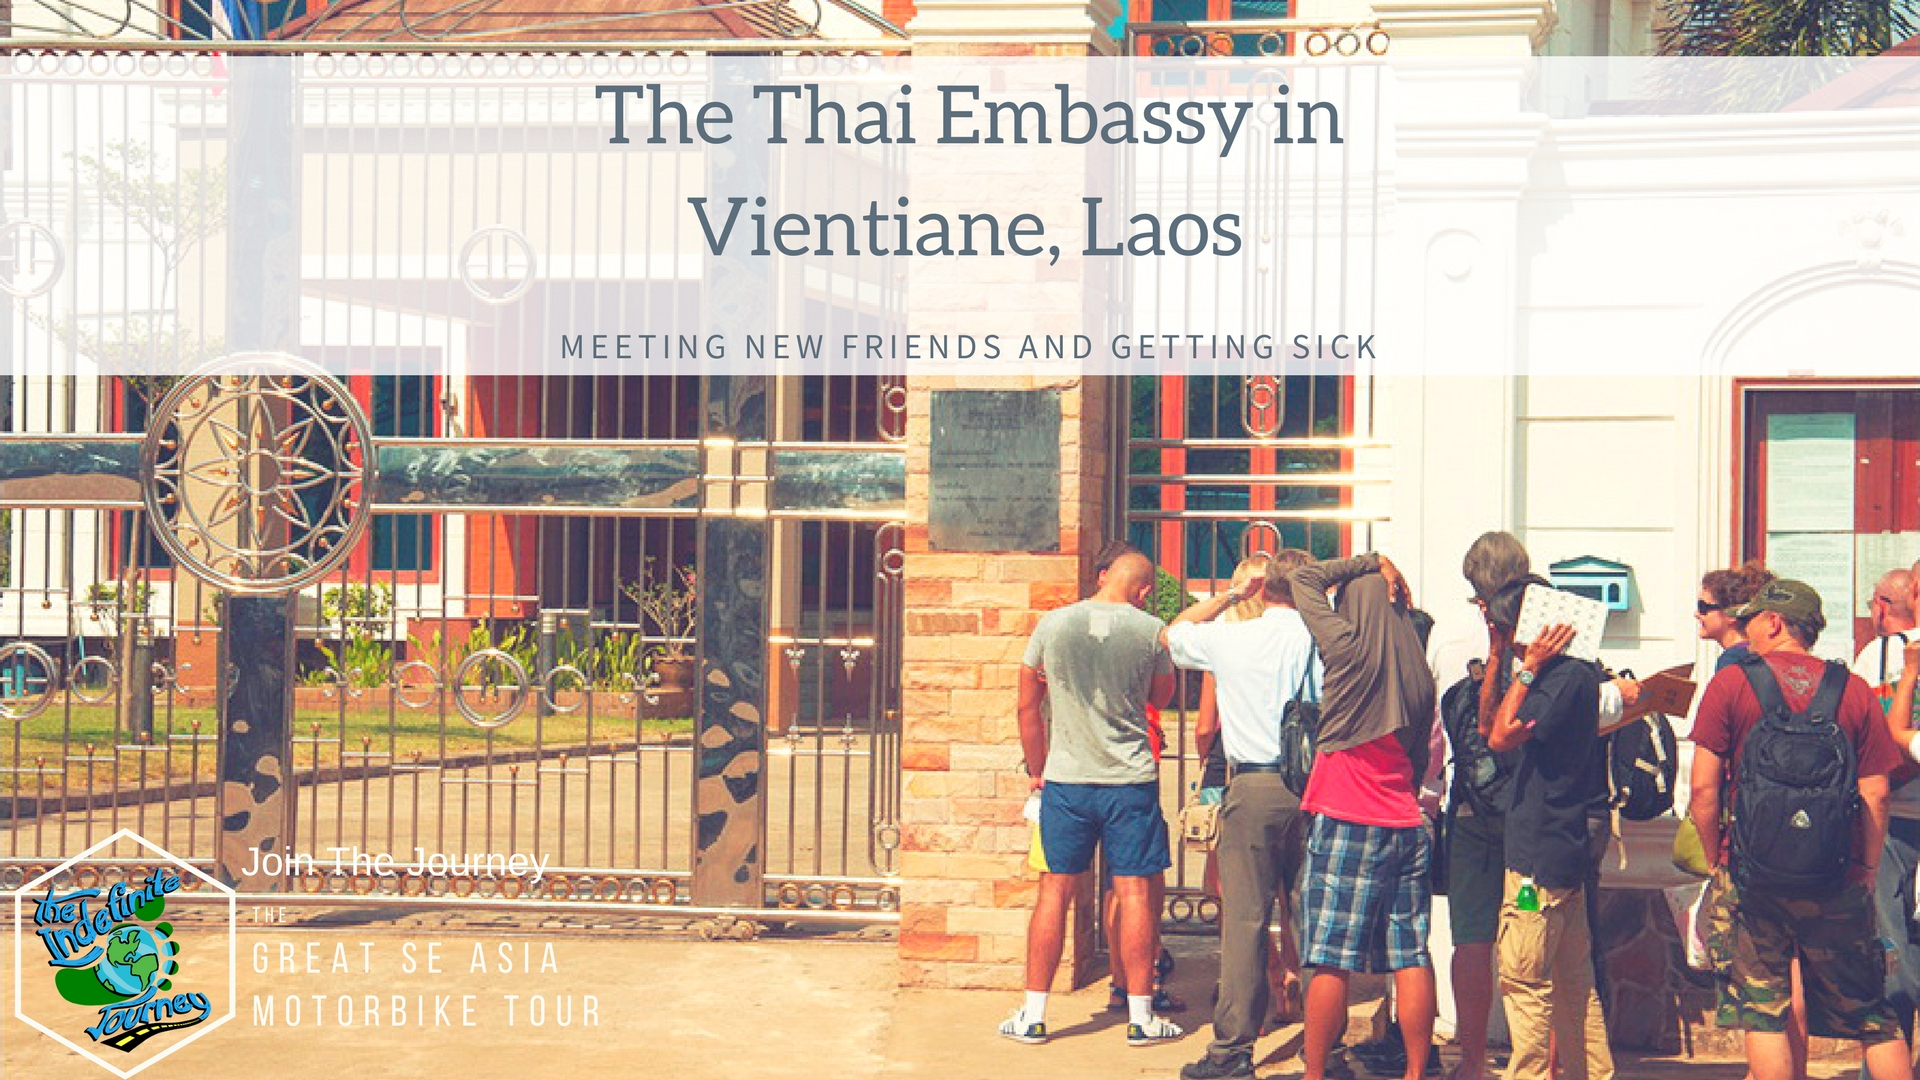 The Thai Embassy in Vientiane, Laos - Meeting New Friends and Getting Sick